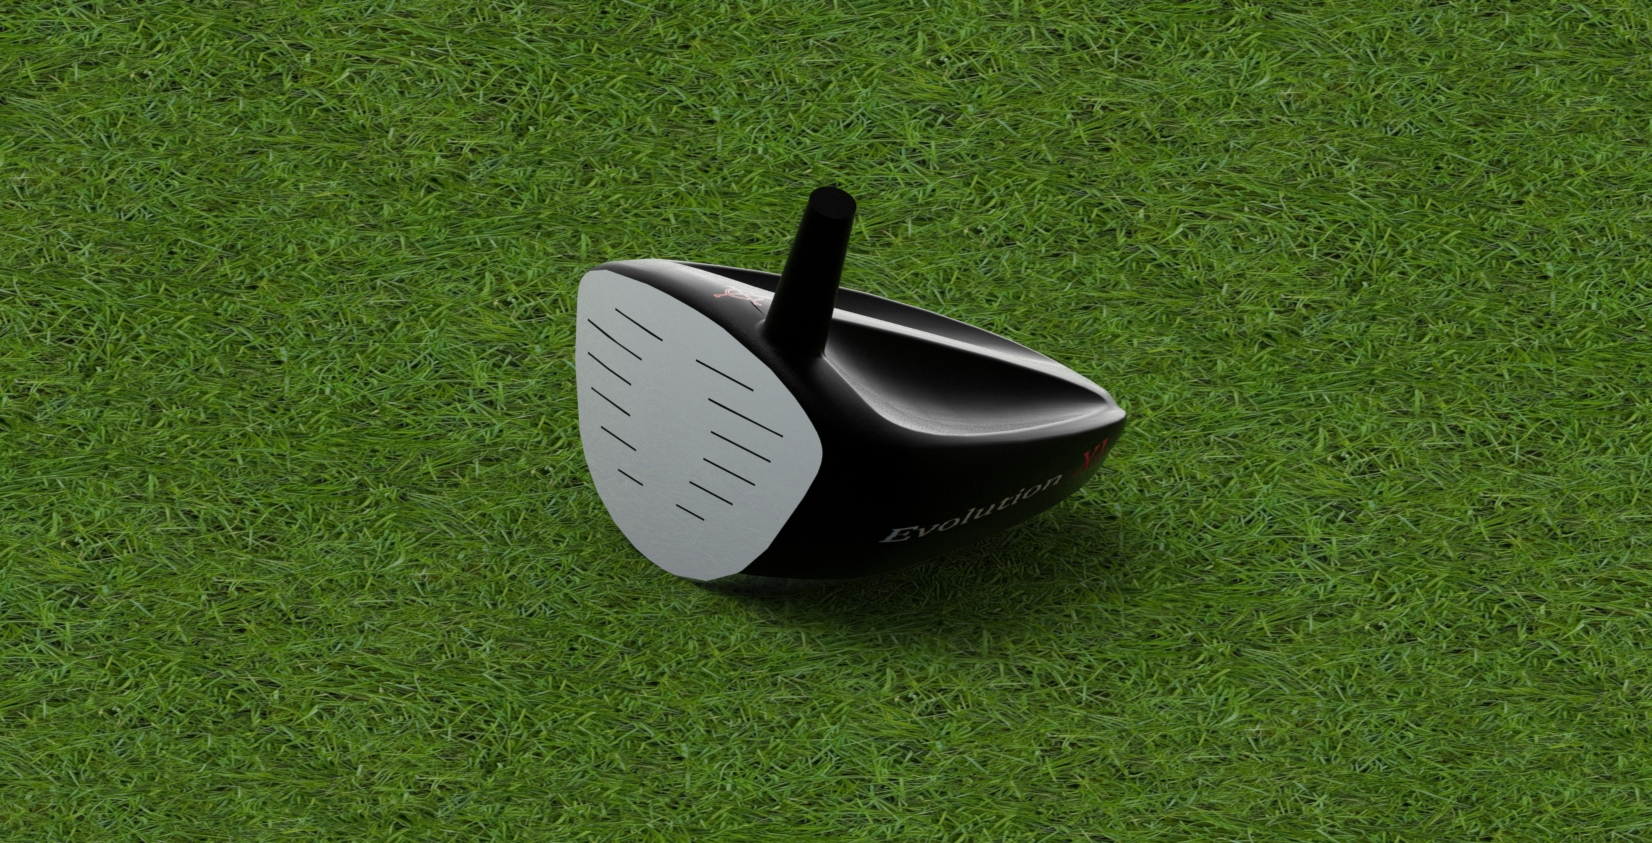 Golf Club Head Reverse Engineered using SolidWorks Surfacing